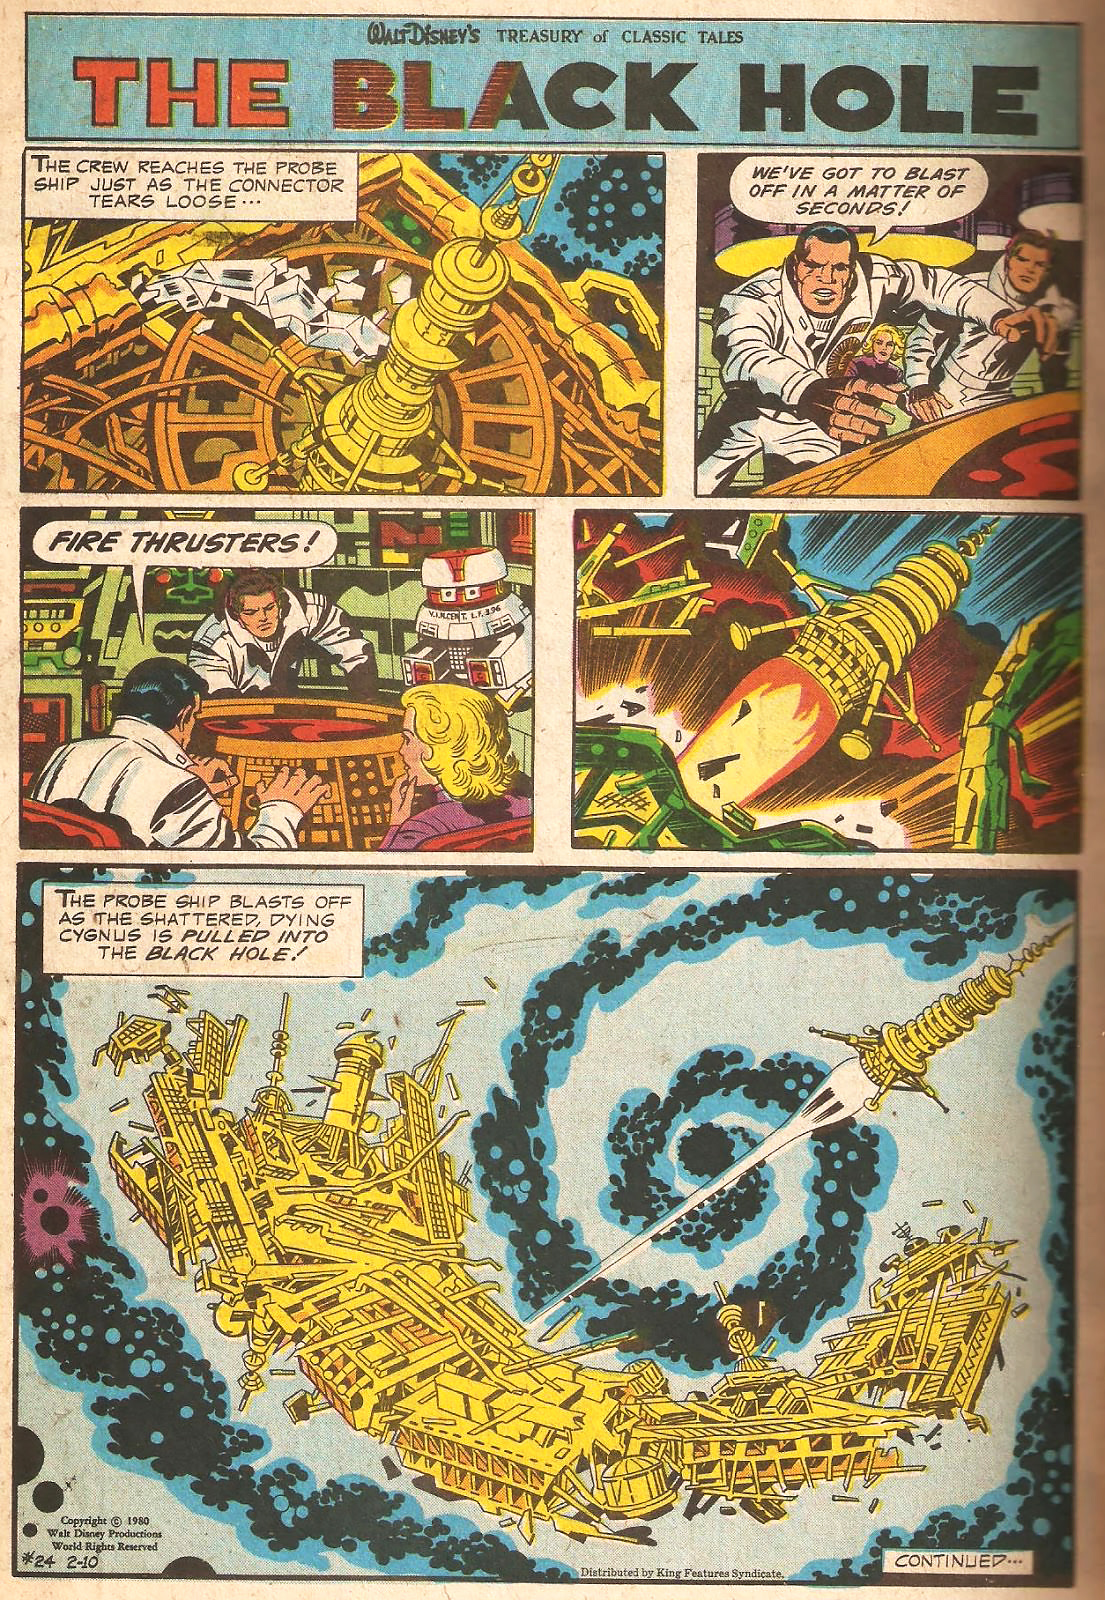 The Black Hole By Jack Kirby Tain T The Meat It S The